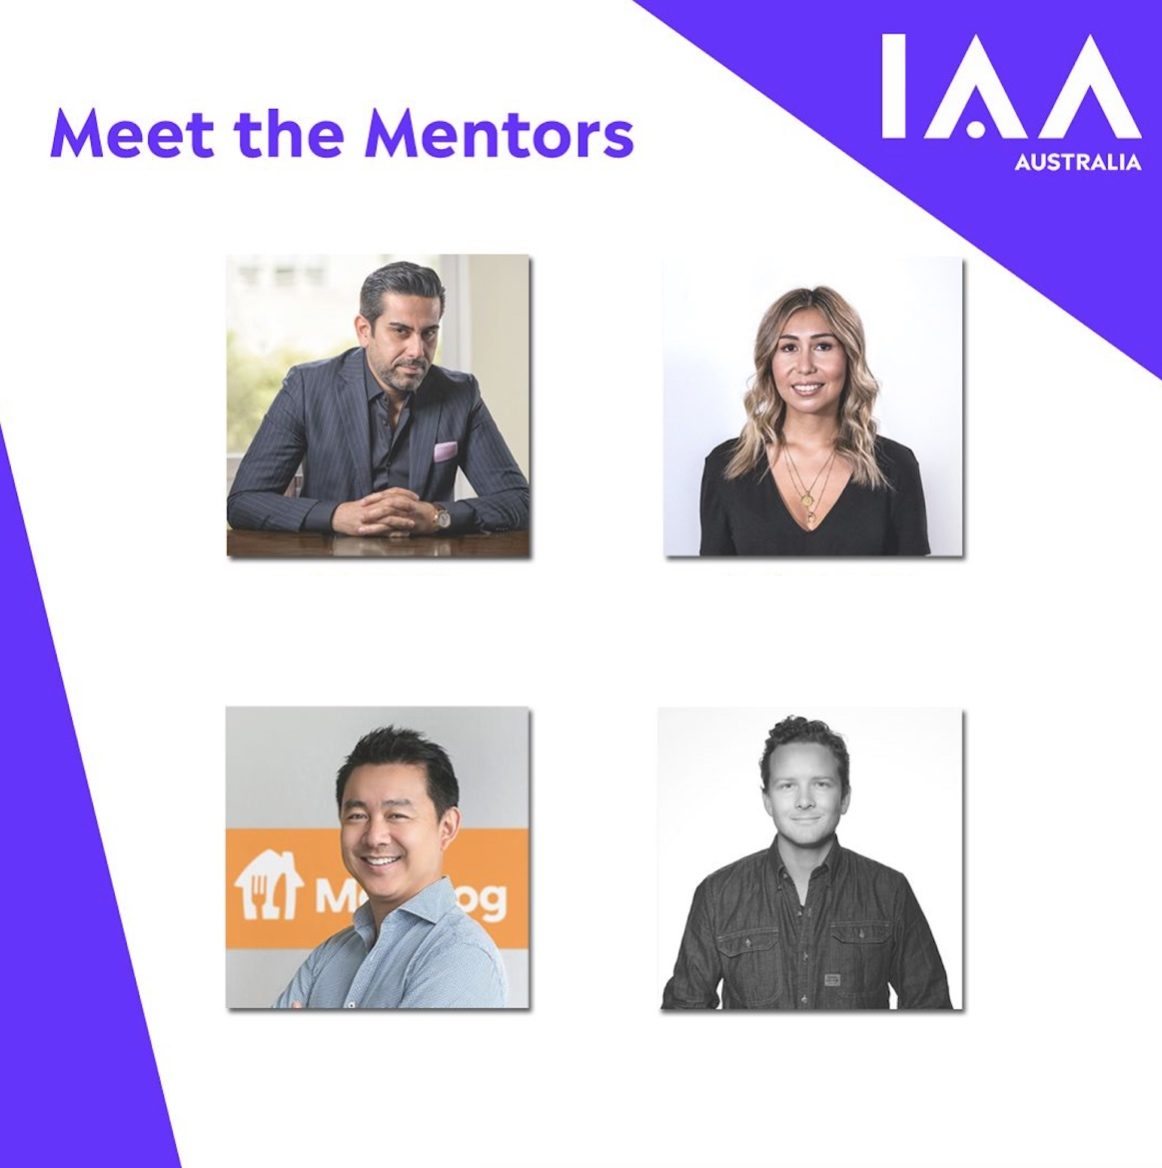 IAA Young Professionals to host free virtual speed mentoring event 4pm, next Tuesday 29 Sept